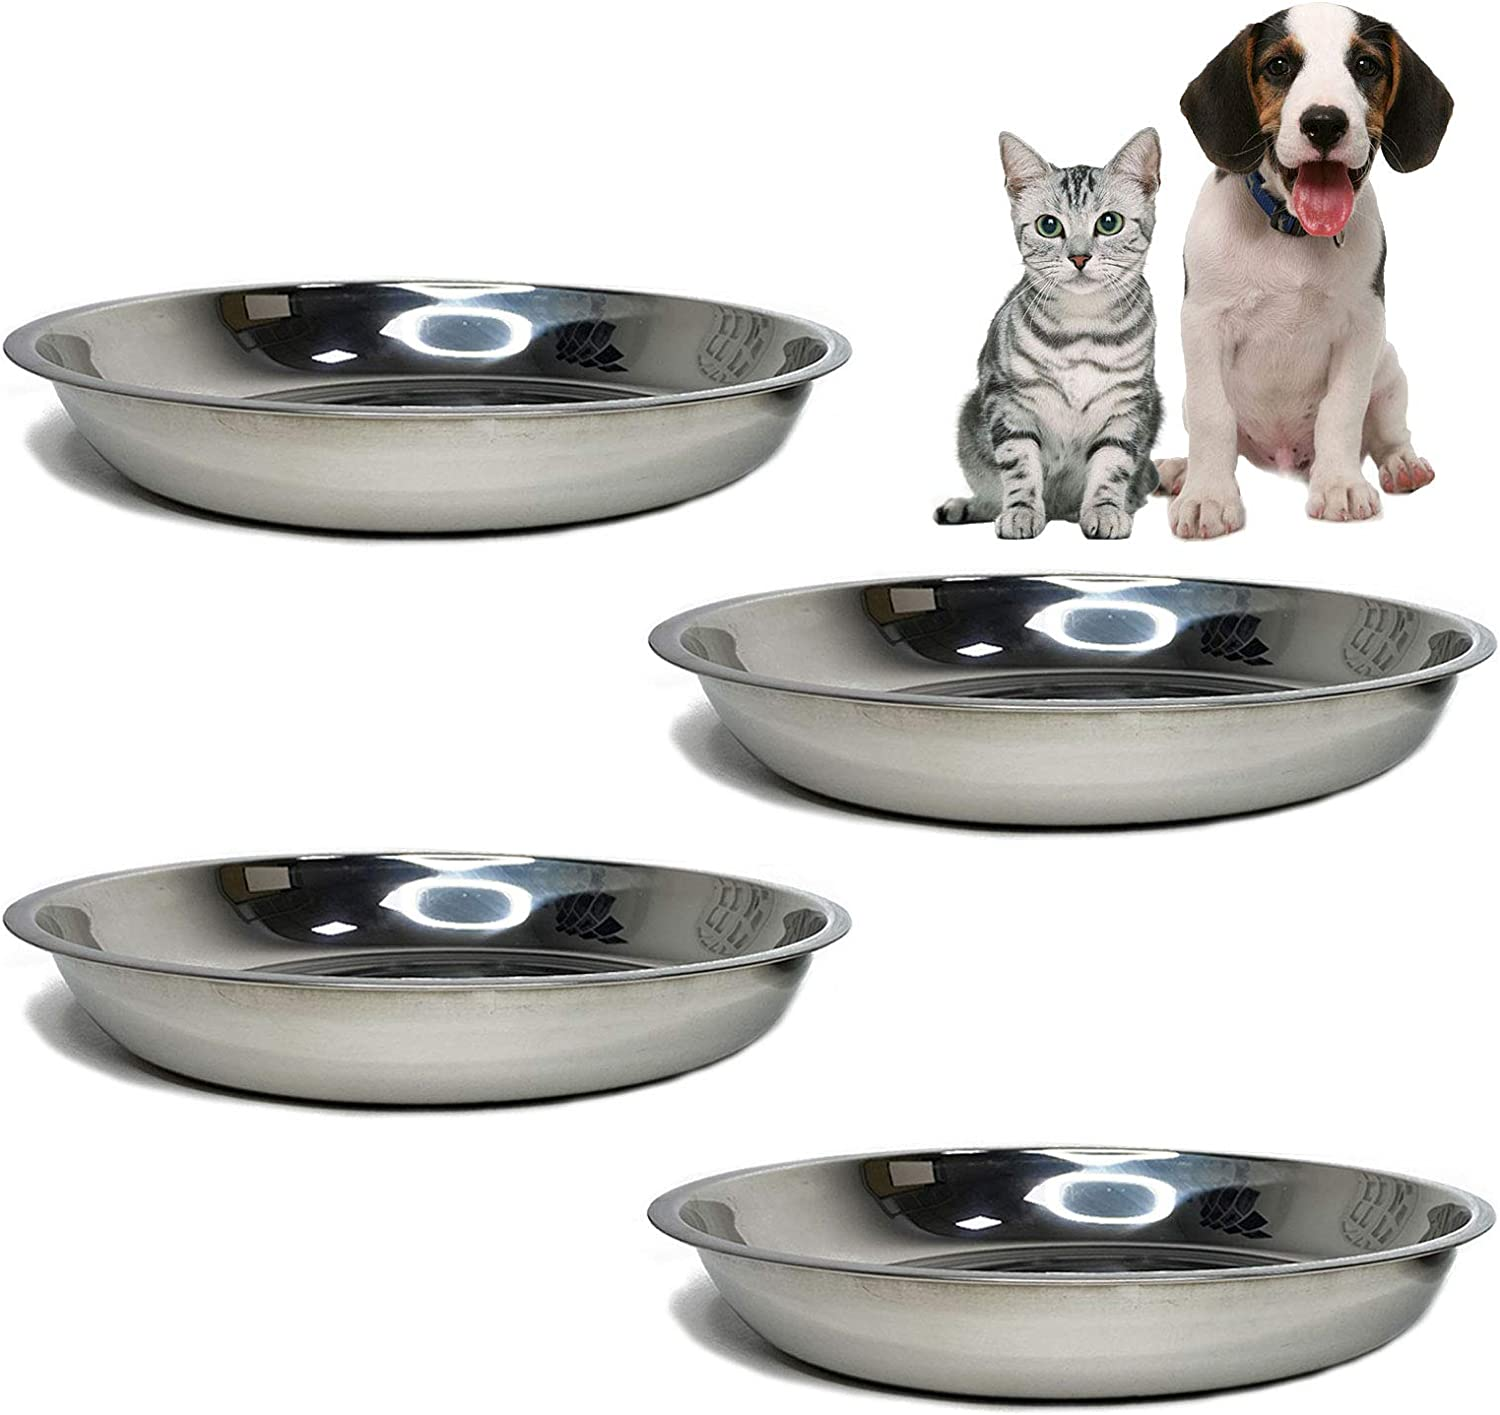 kathson Stainless Steel Whisker Relief Cat Bowl, 4 pcs Shallow and Wide Bowls, Pet Cat & Dog Feeding Large Dishes Fits with Elevated Stands Pet Bowl Stand (9.44 Inch Dia.)